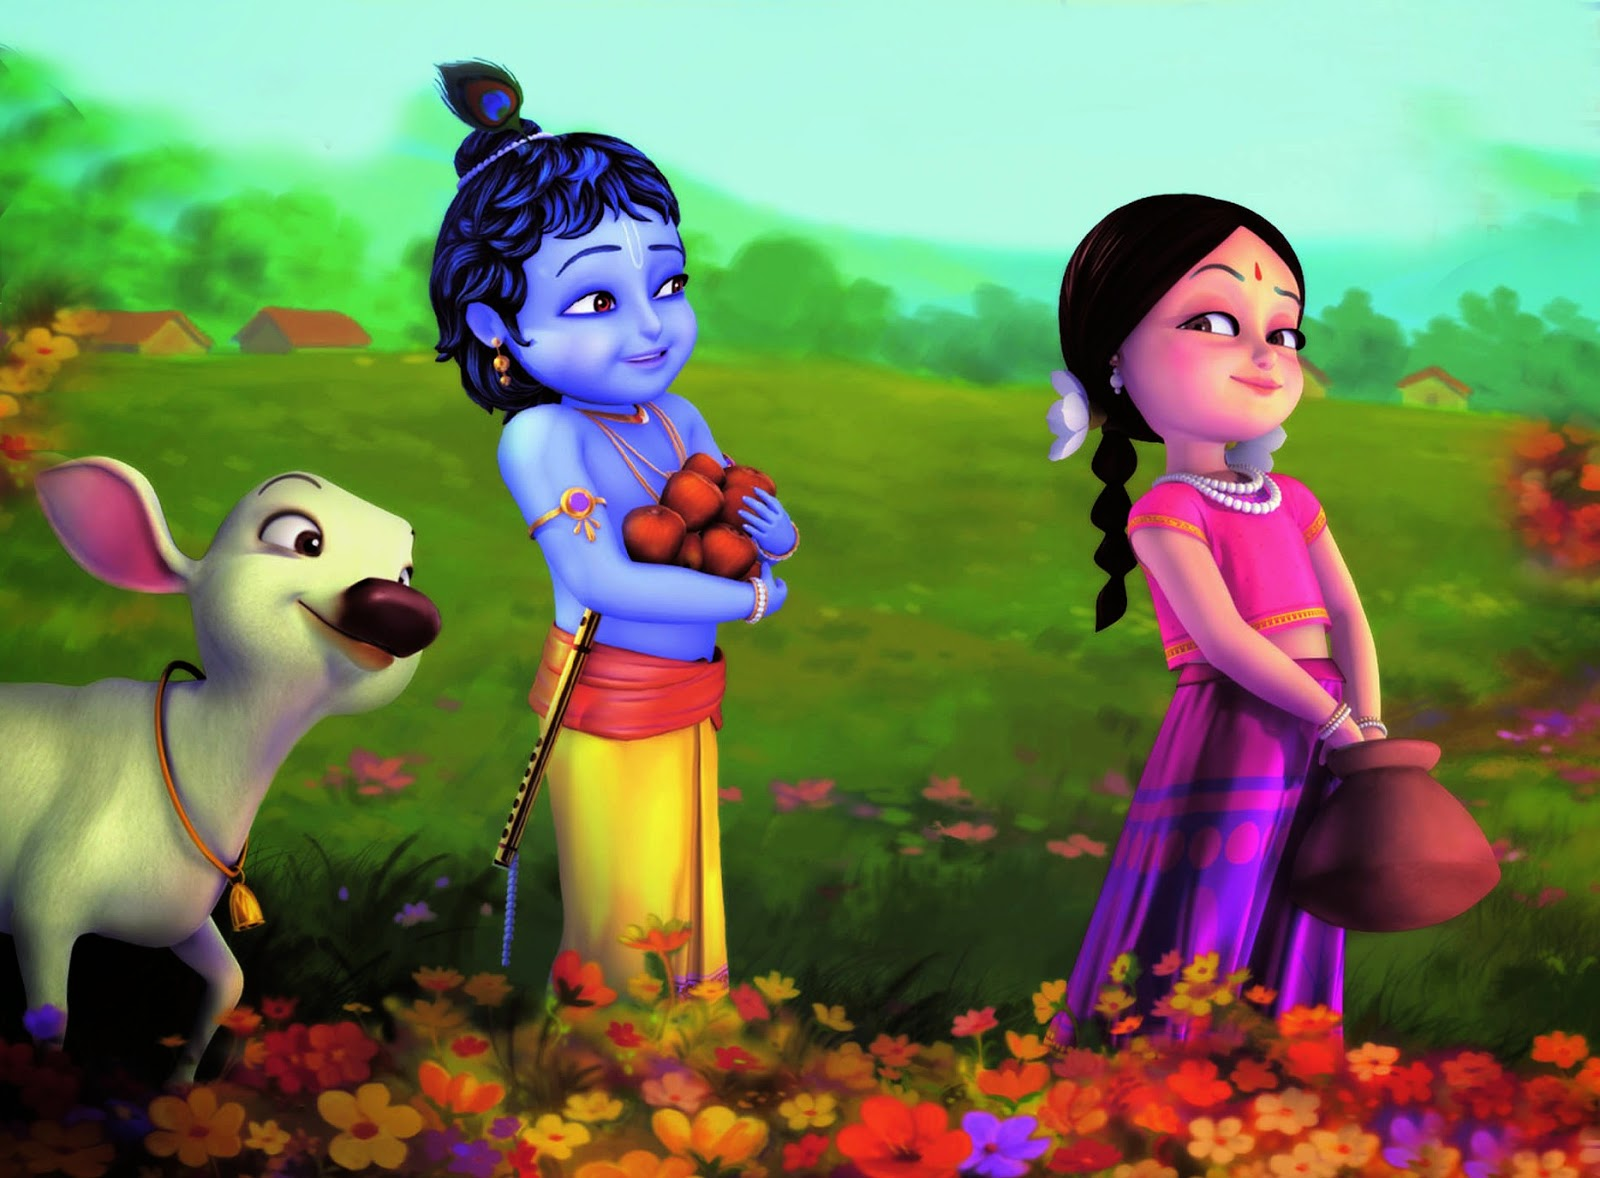 Free Download HD Wallpapers: Little Krishna Free Wallpapers